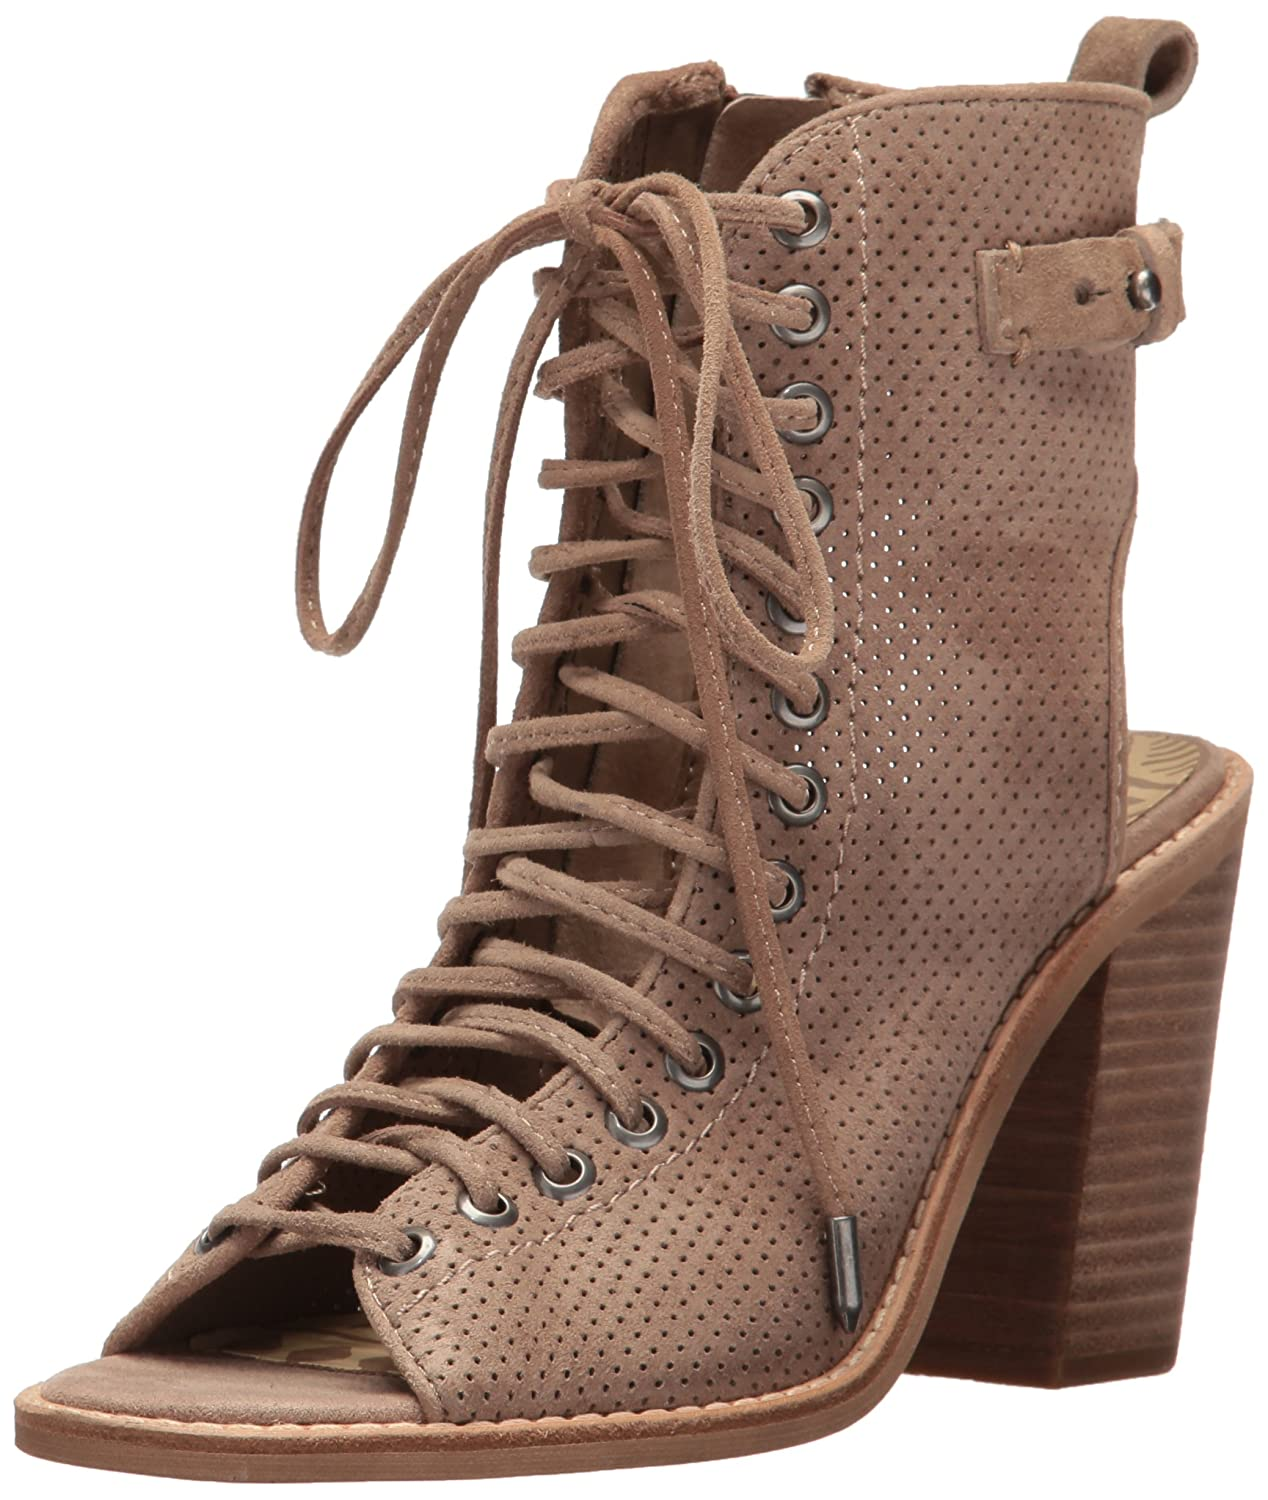 Dolce Vita Women's Loren Boot B01N1I8KCR 9.5 B(M) US|Light Taupe Suede